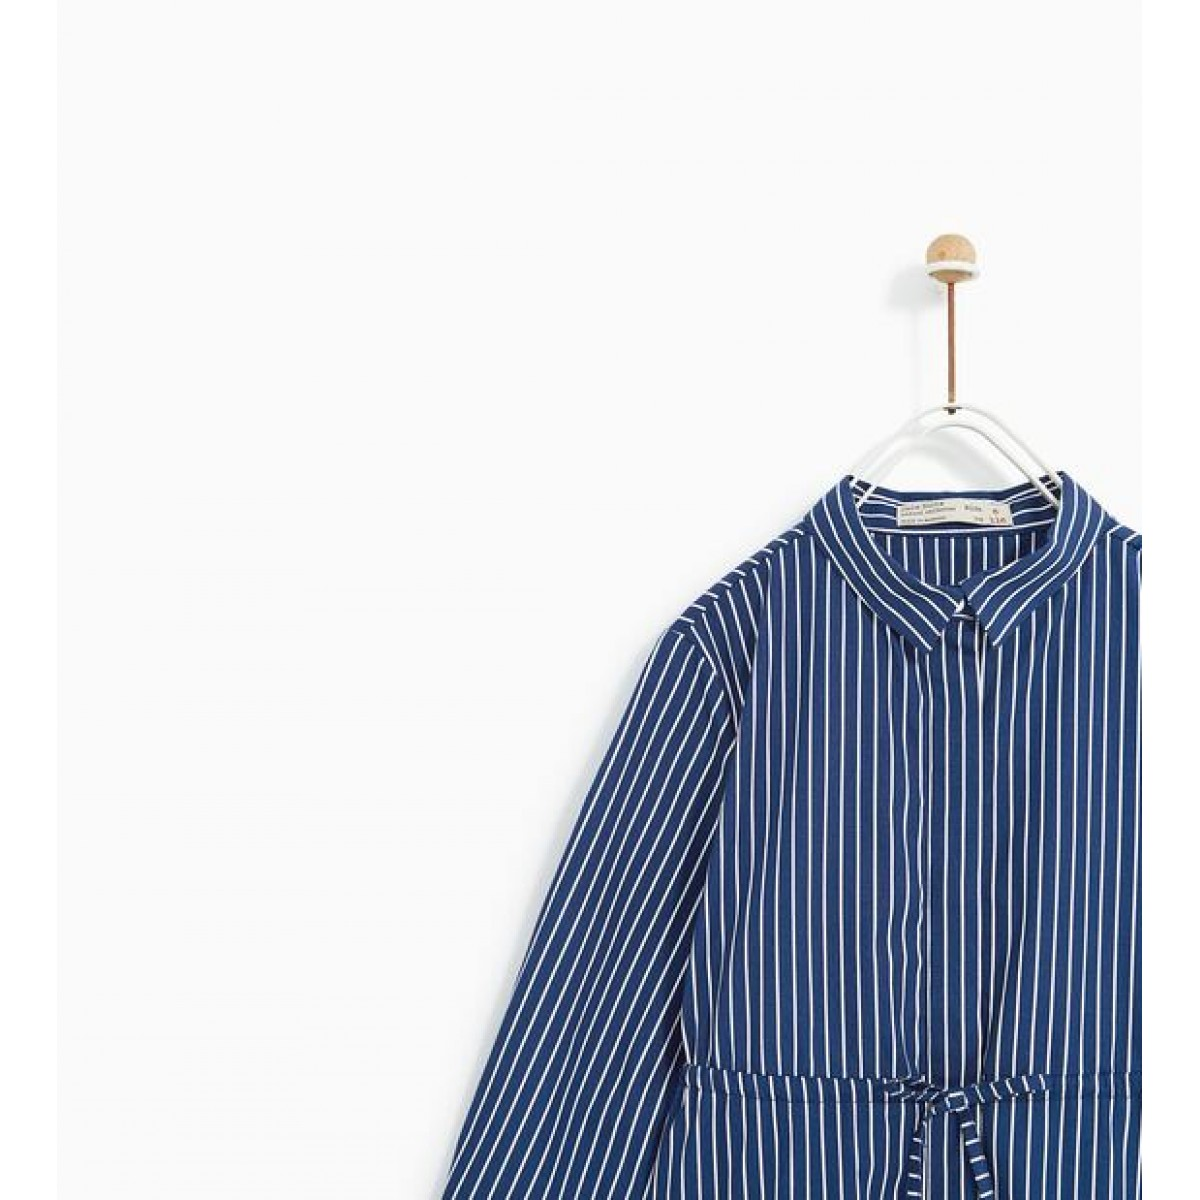 Zara Stripped Shirt Dress